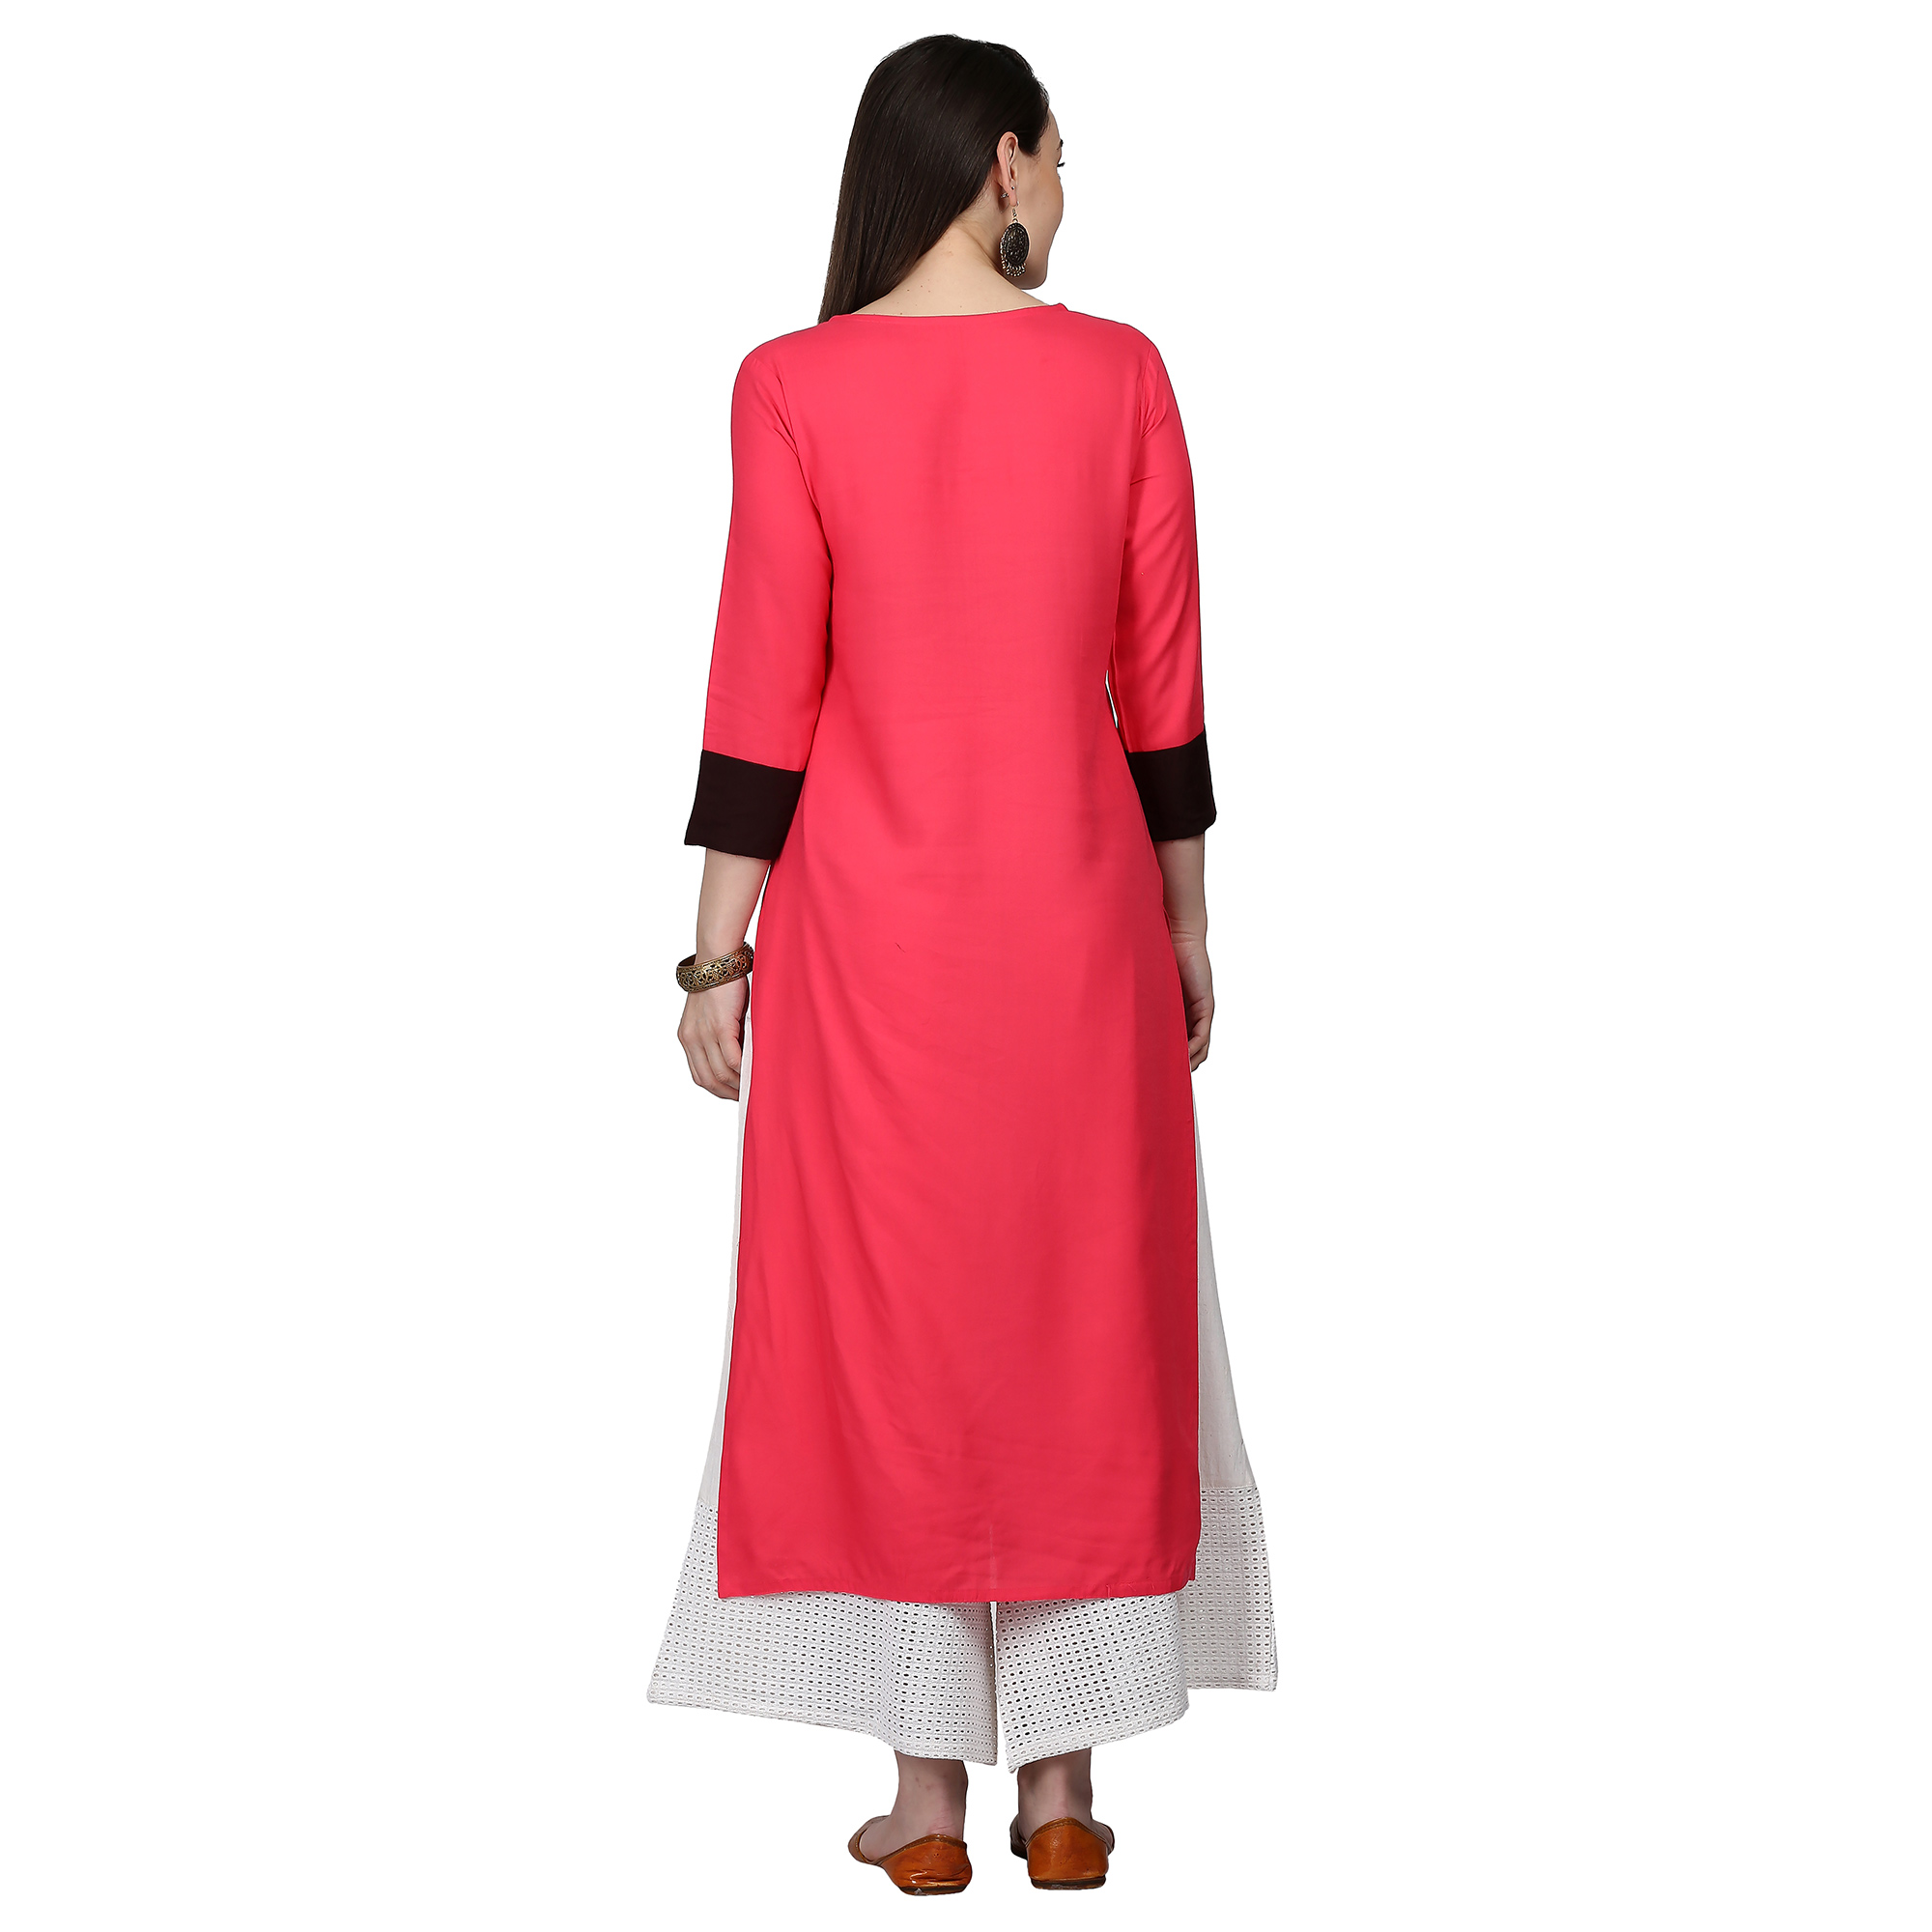 Excellent Off White-Pink Colored Casual Embroidered Cotton Kurti